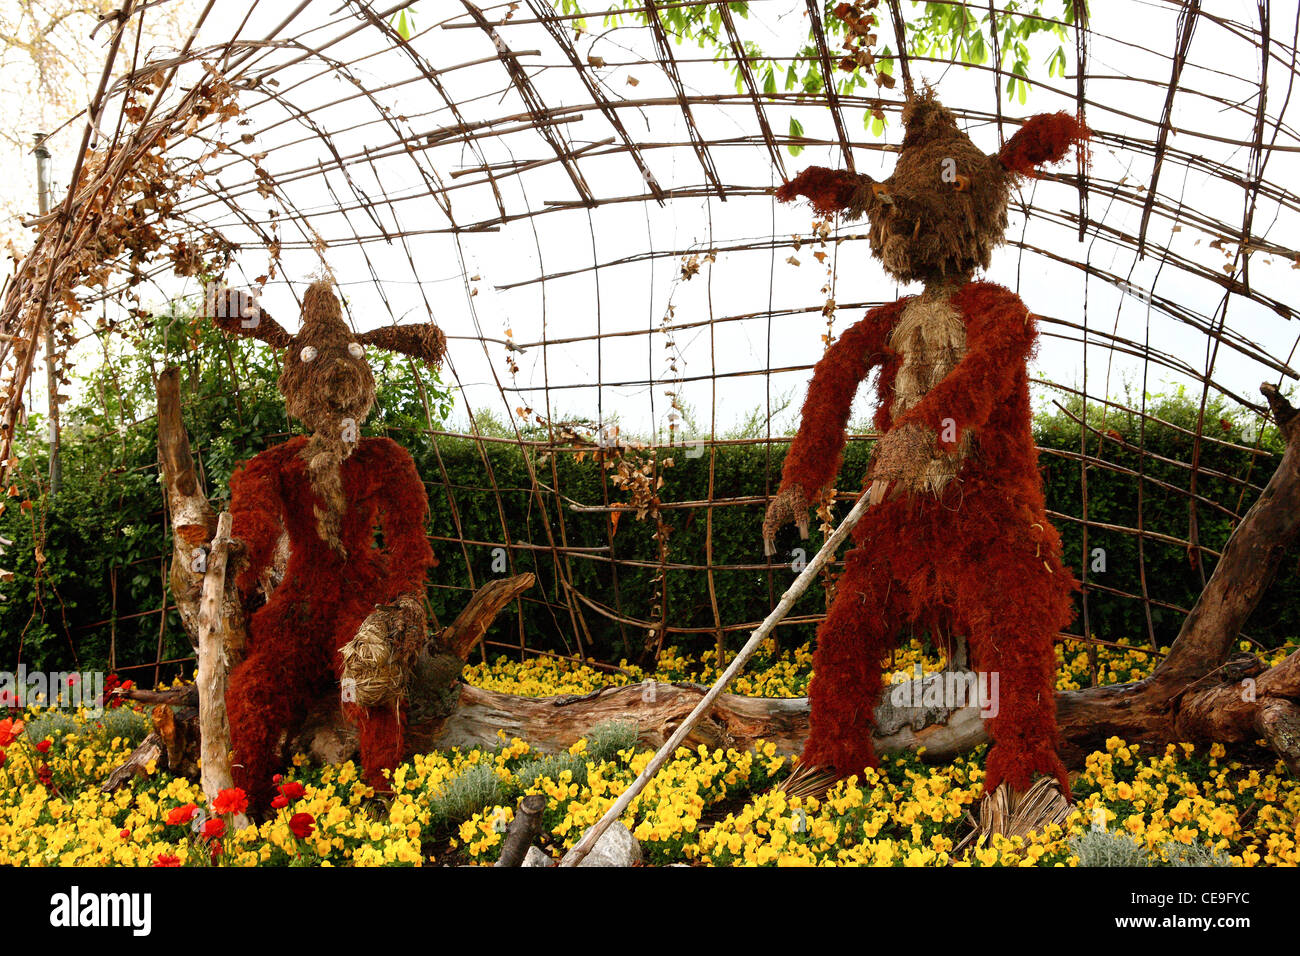 Creatures made from dried plants - decoration on green squares of the city of Montreux. - Stock Image